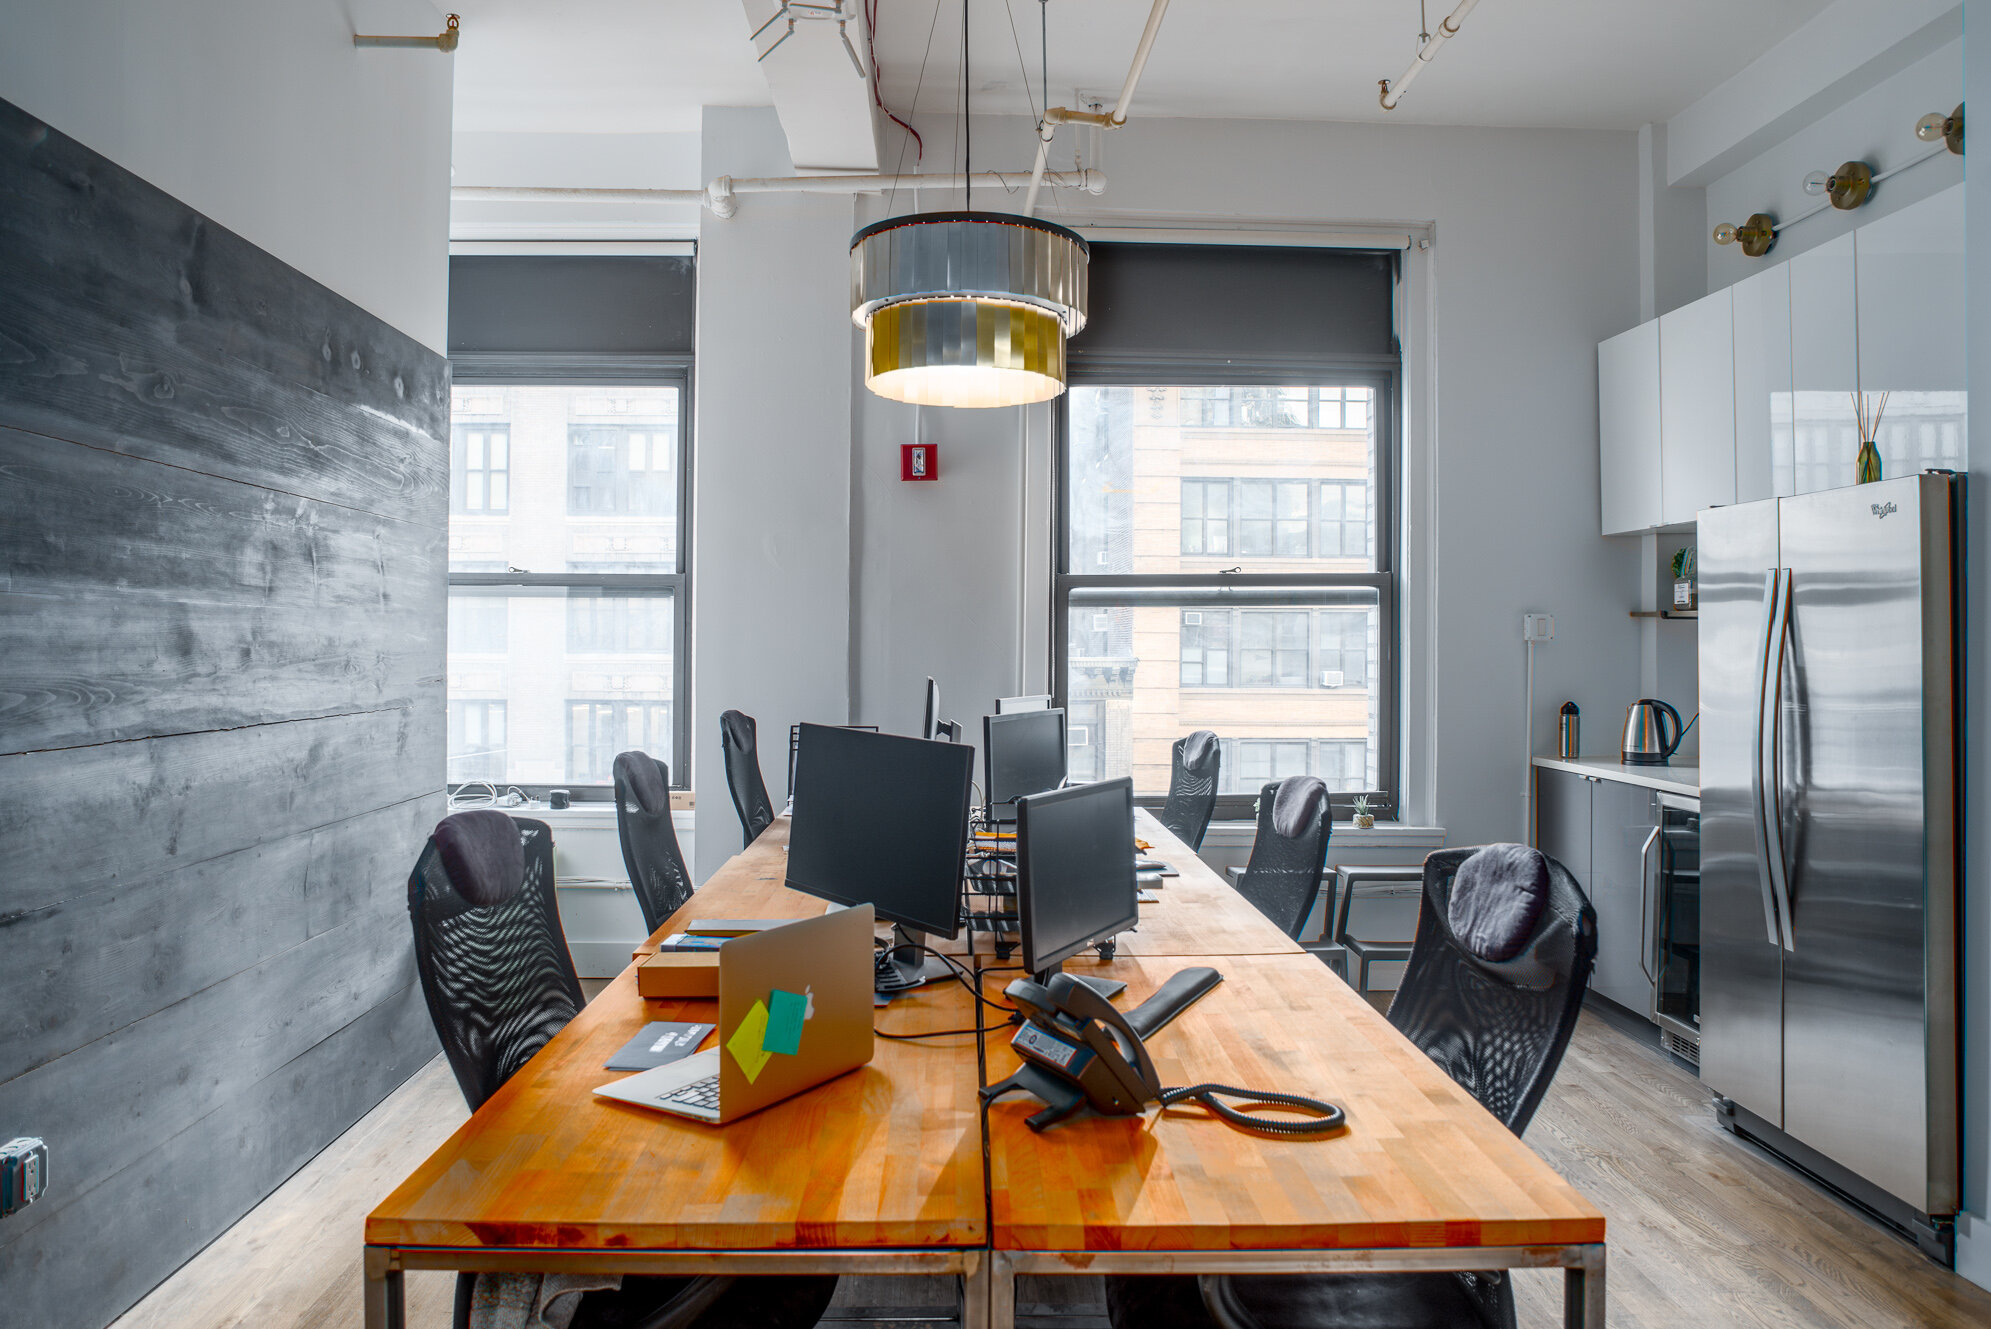 Shared work stations at wooden desks in flexible office space